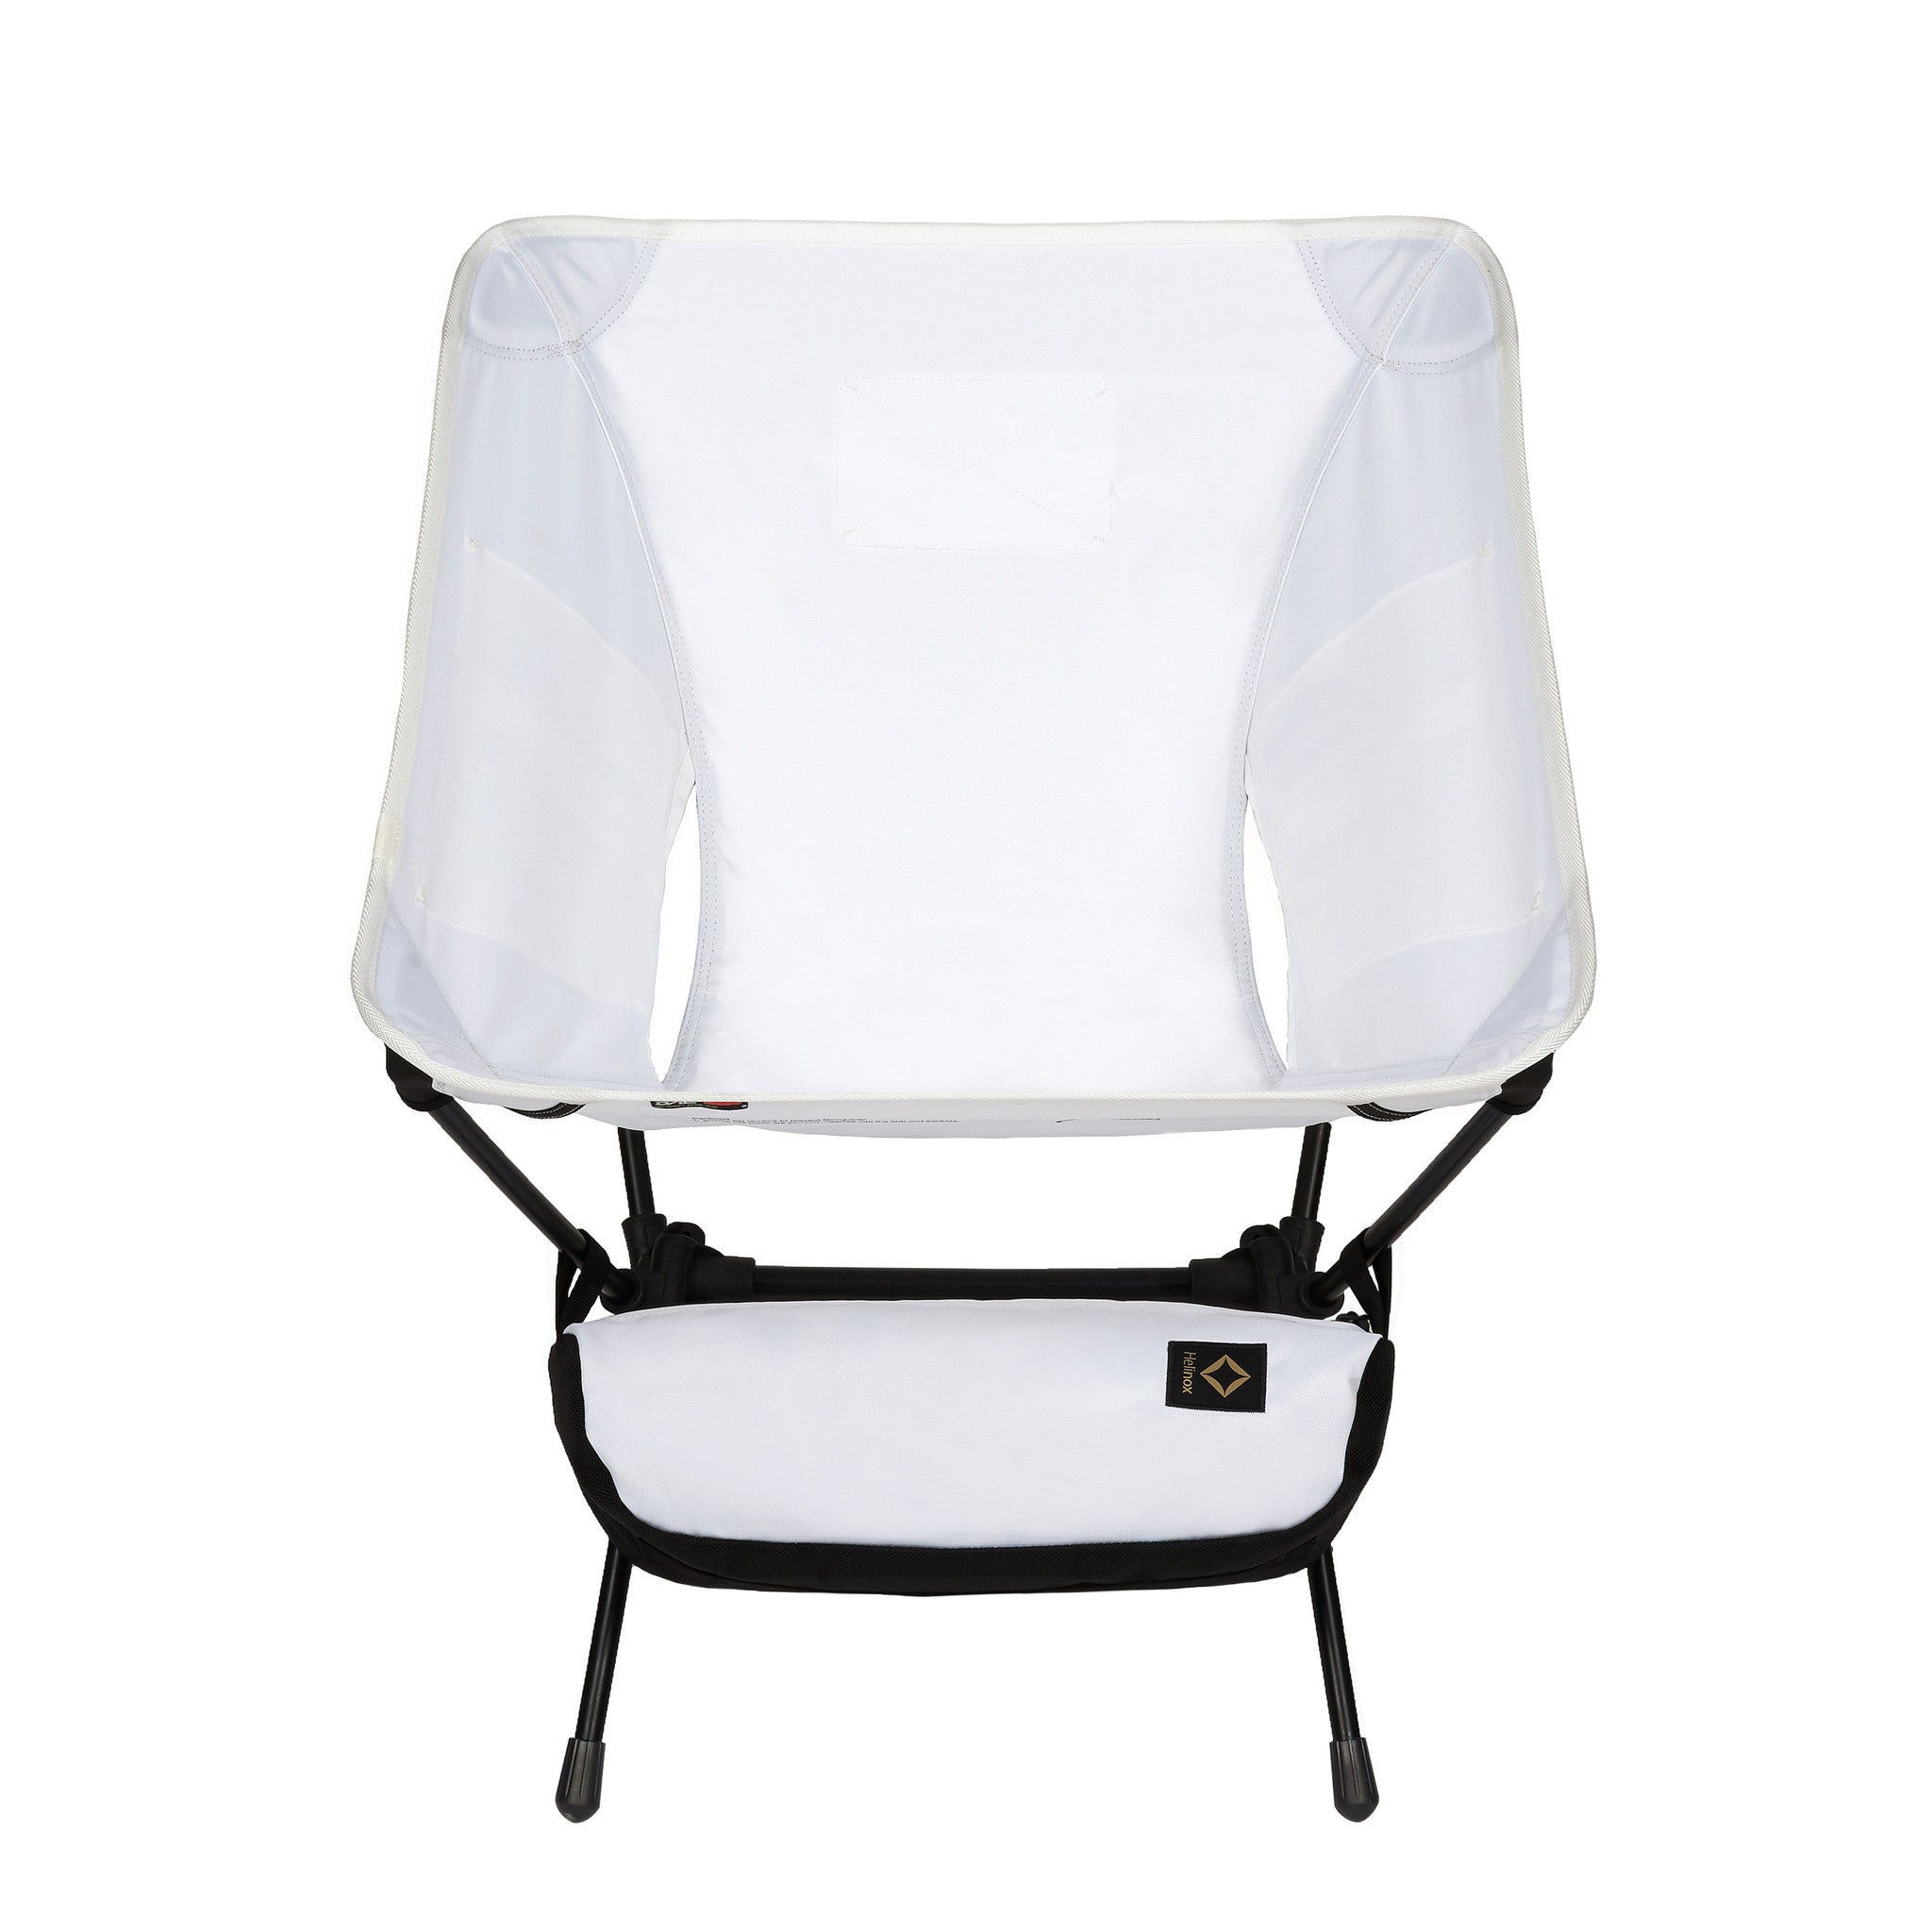 Chair Tactical Snow White – Helinox